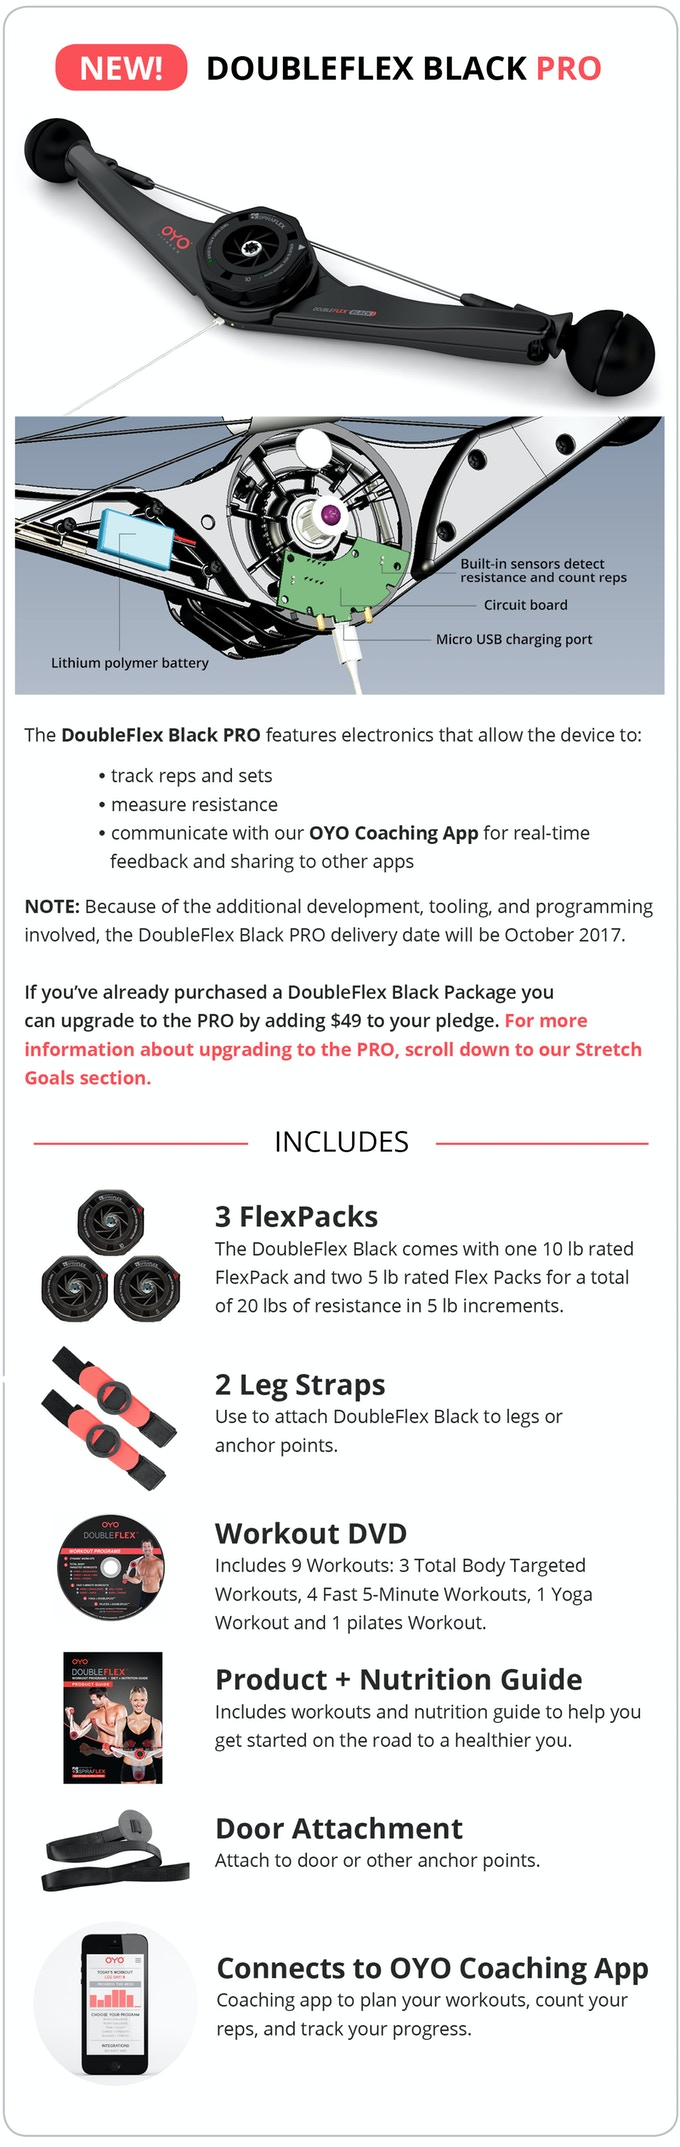 Total Body Portable Gym Doubleflex Black Oyo Fitness By Paul The Totalbody Circuit Workout You Can Do While Travel Skip Crowded And Expensive Health Club Enjoy A At Your Convenience